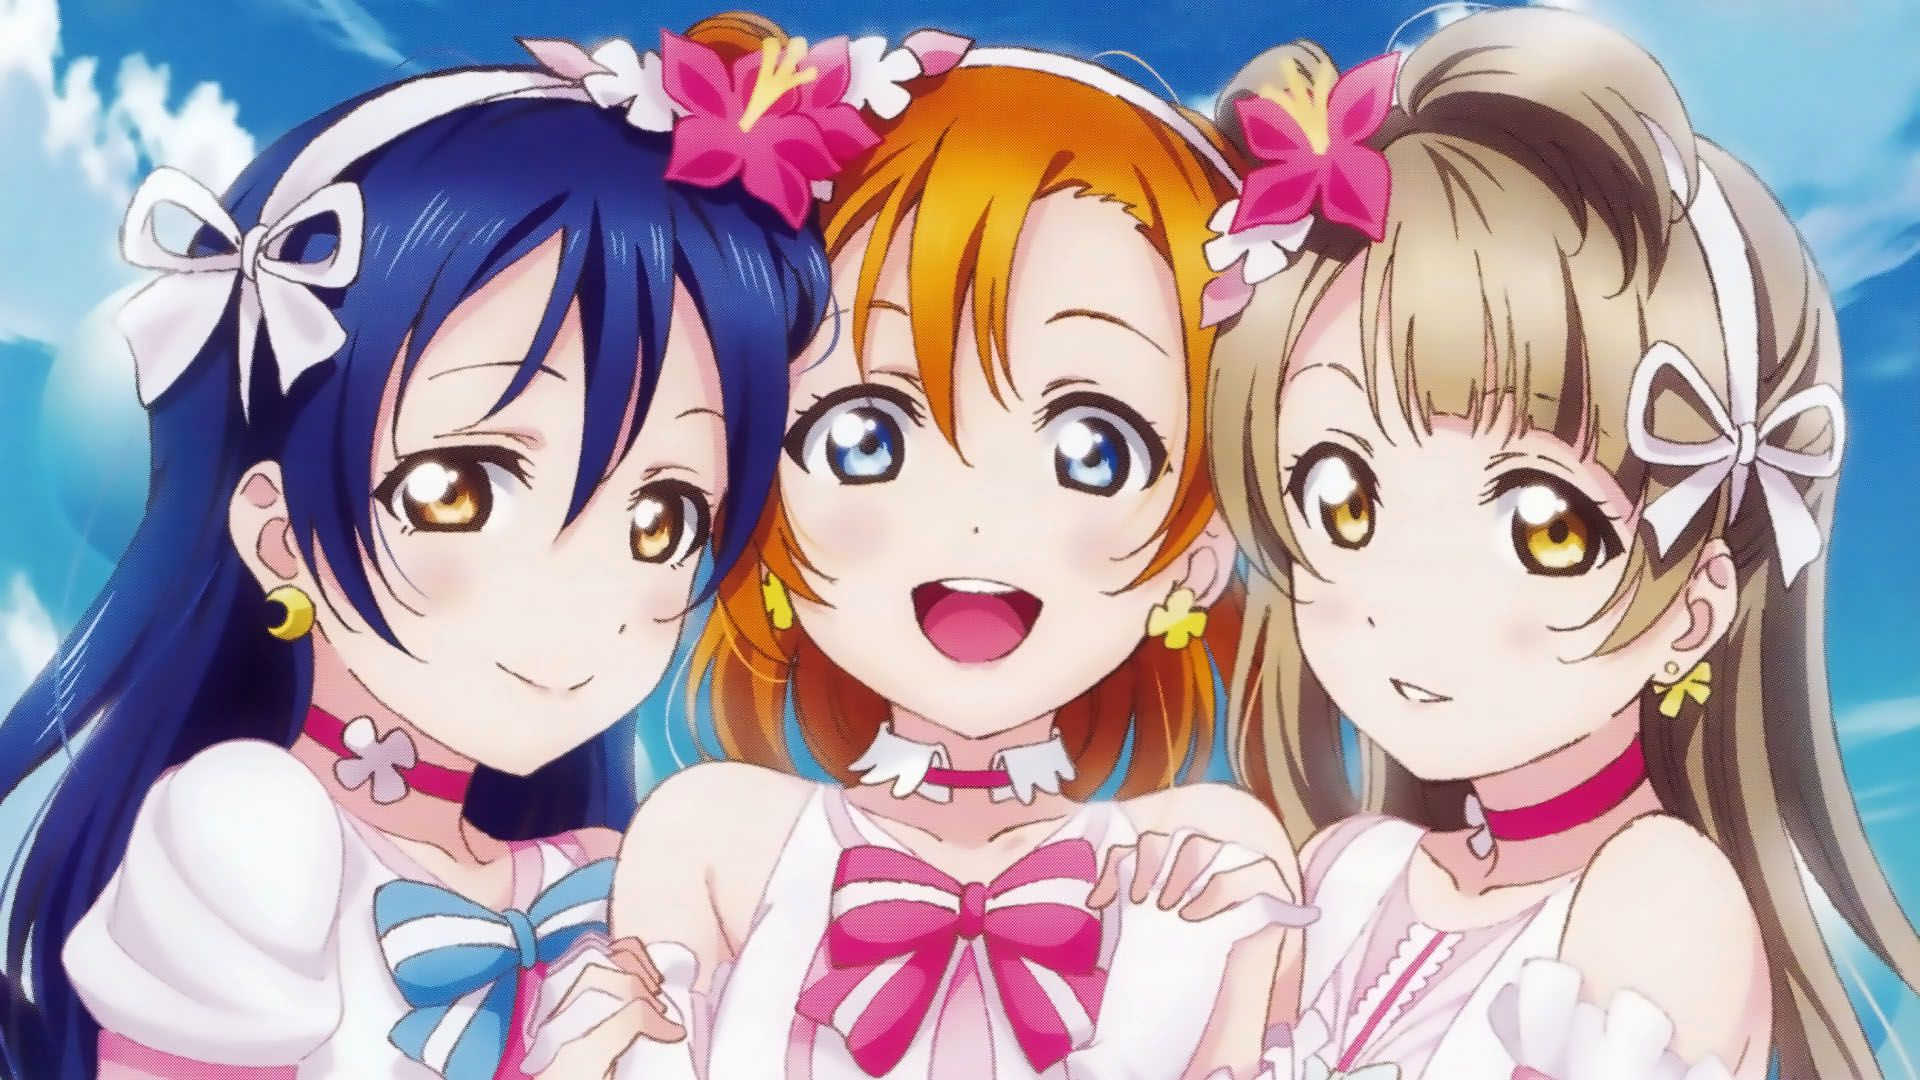 23067_lovelive_PC